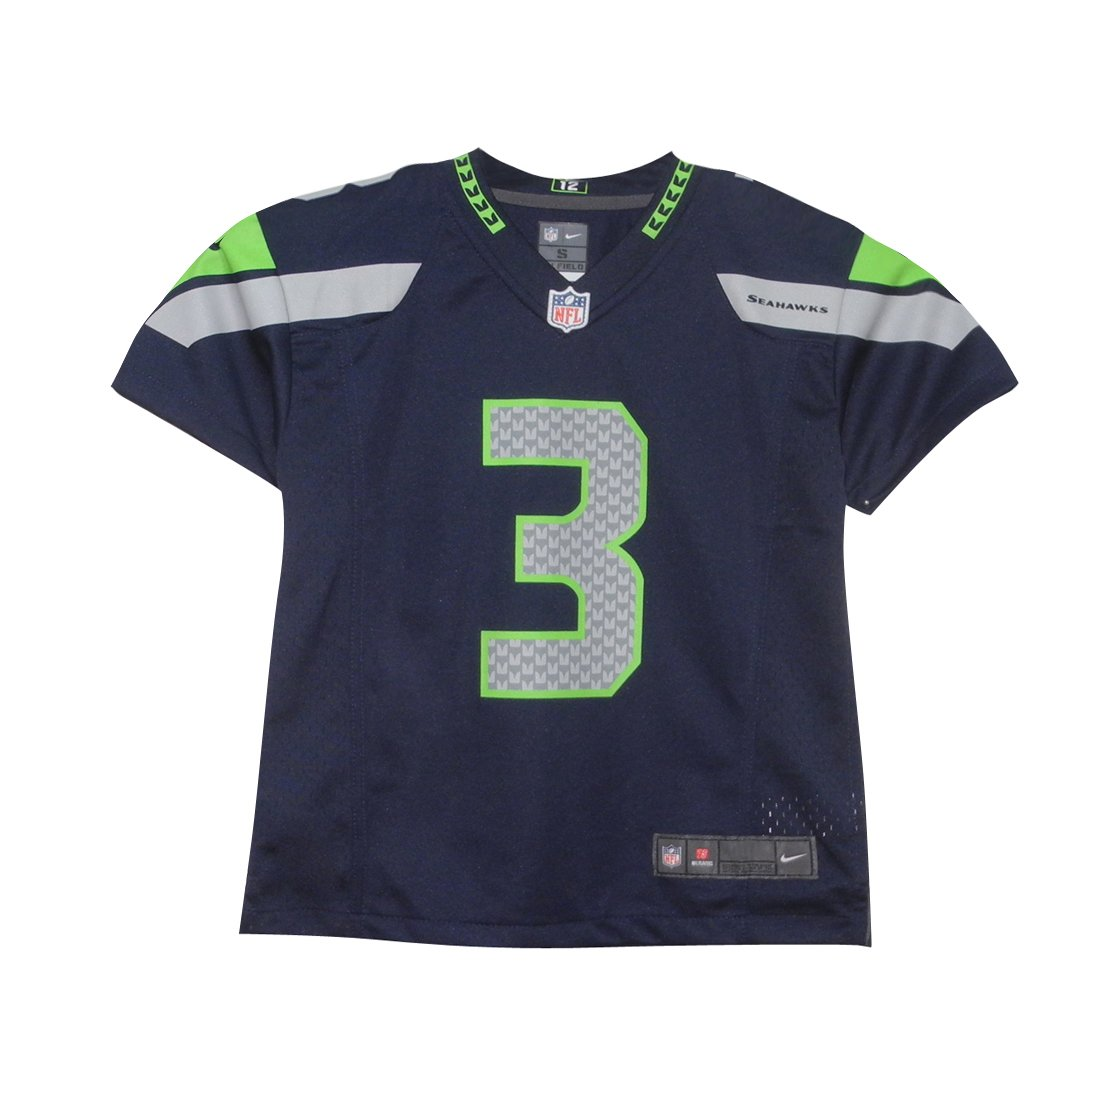 # 3ウィルソンBoys海Seahawks Athletic Short Sleeve Jersey B072HH34BJ  ダークブルー S(4)